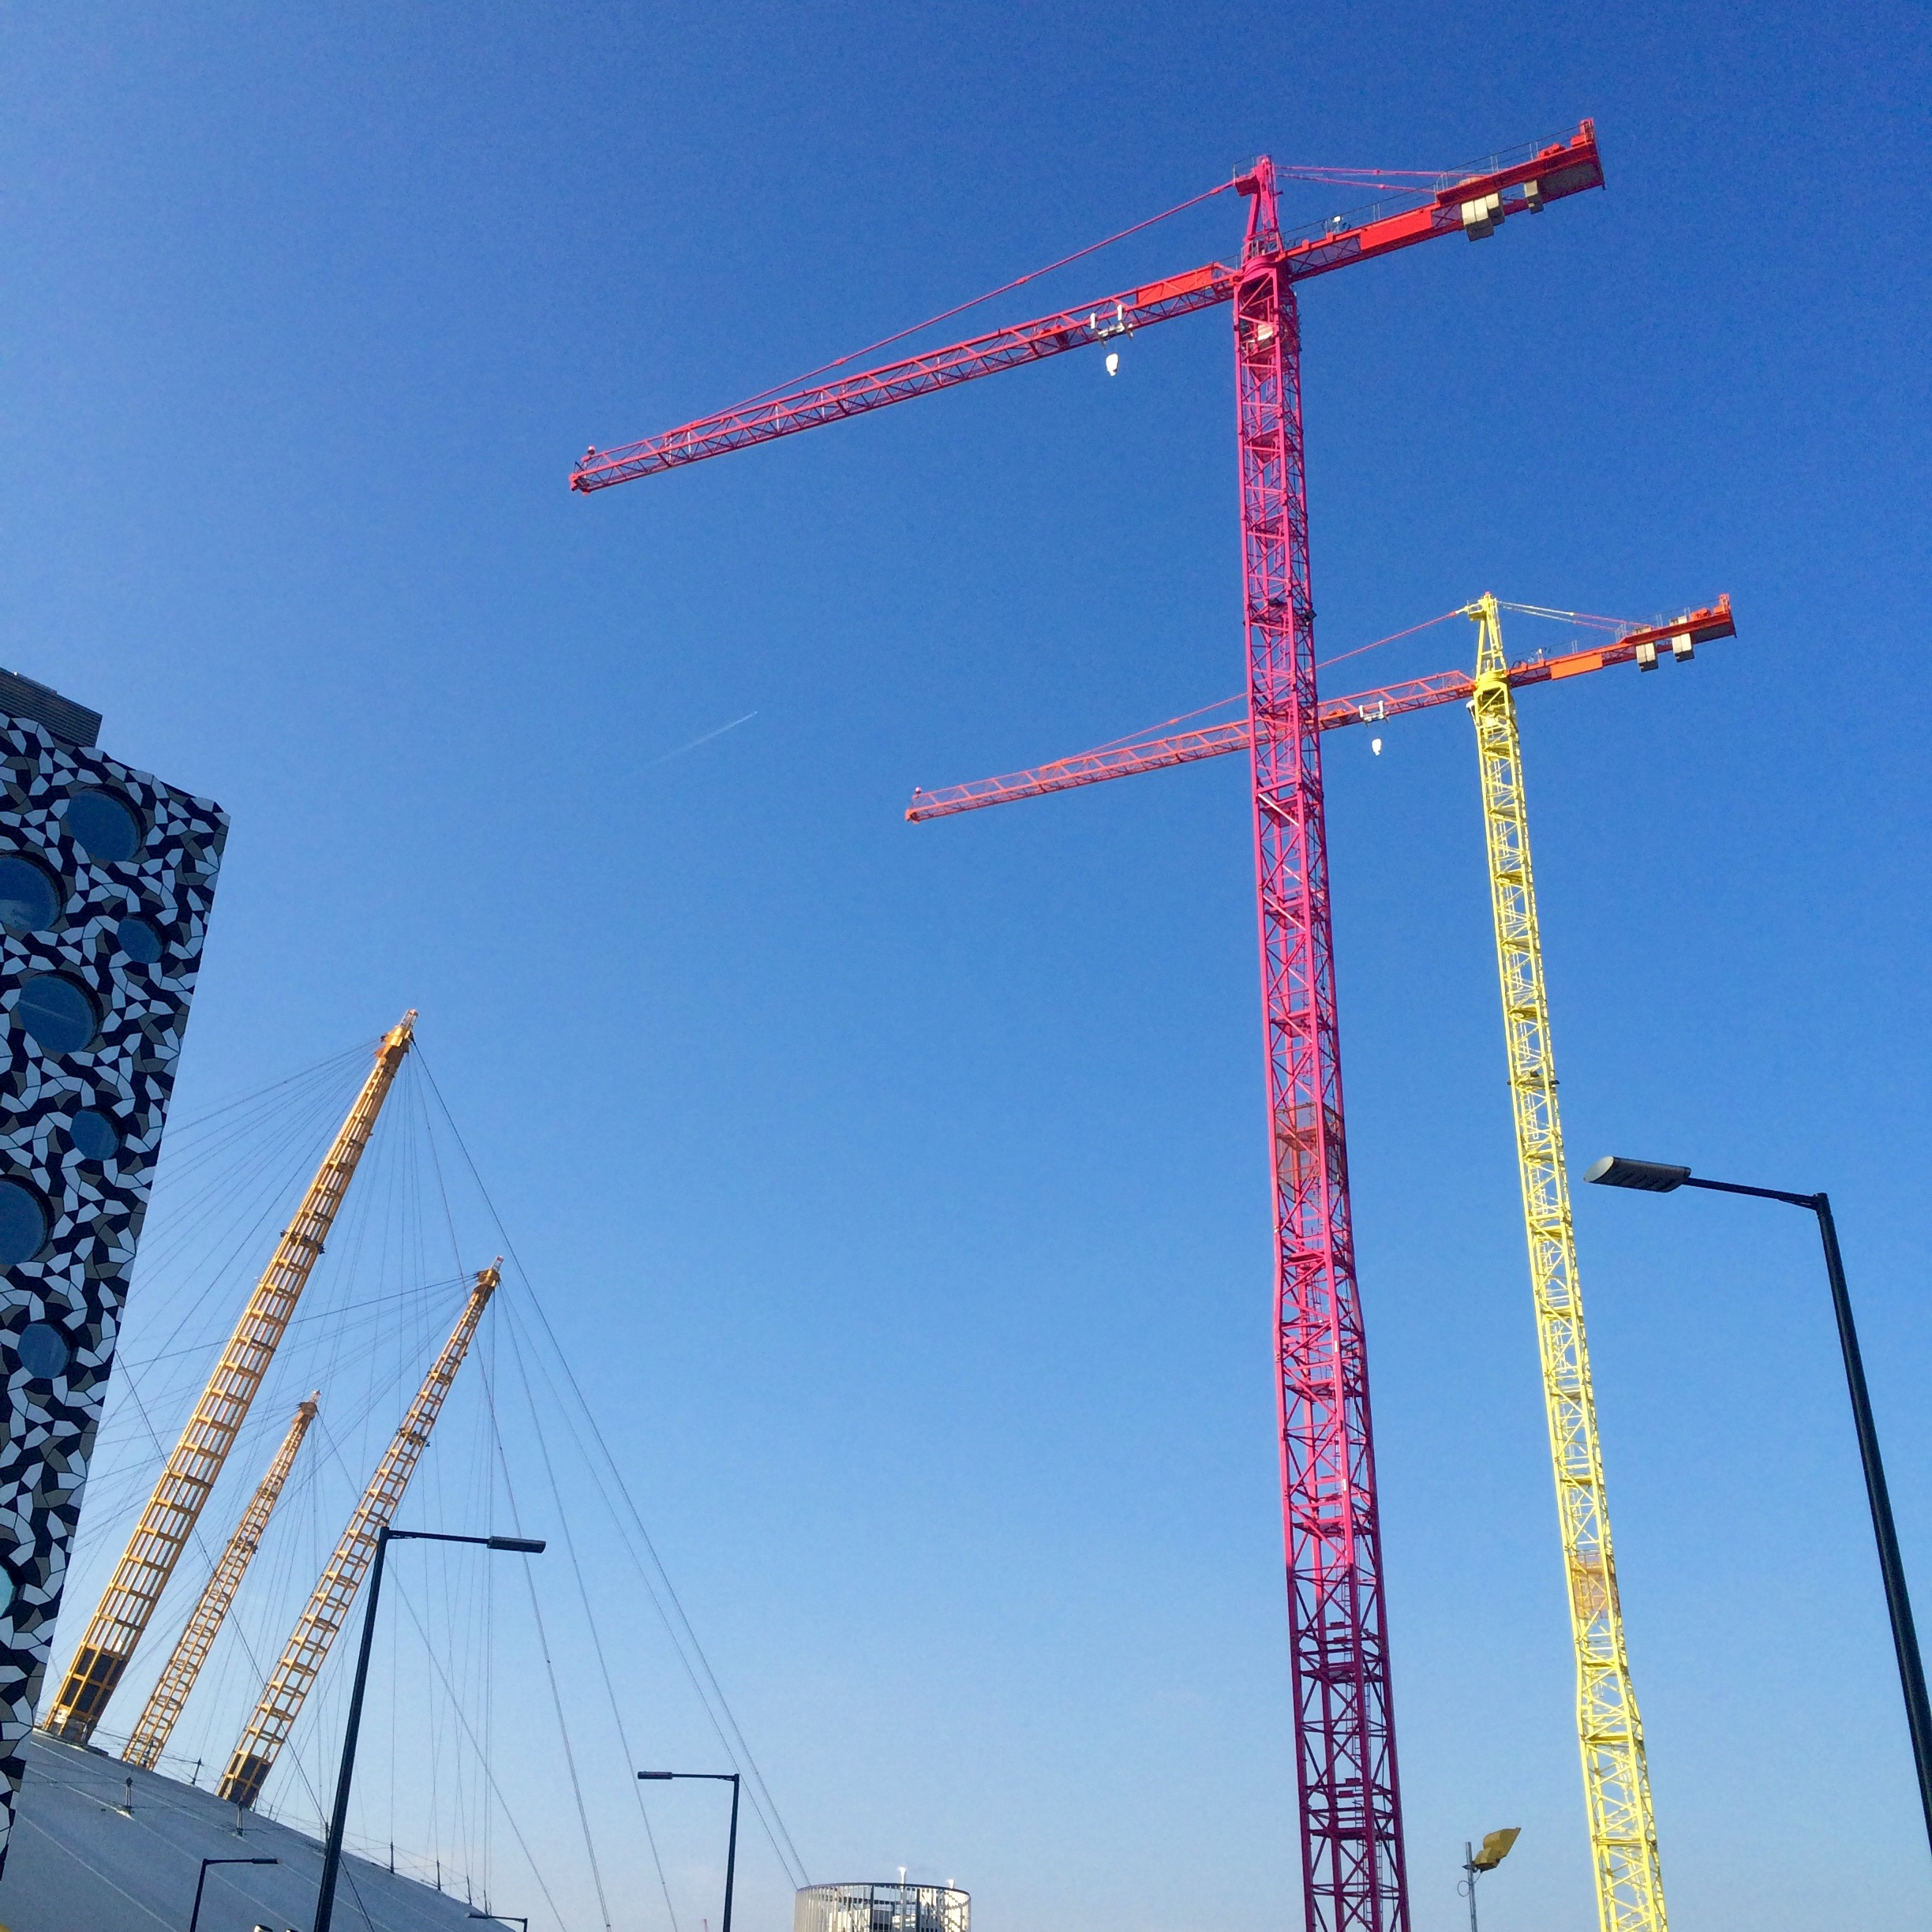 Morag Myerscough's  Colourblock Cranes  on the Upper Riverside construction site, March 2016 [greenpenlondon]